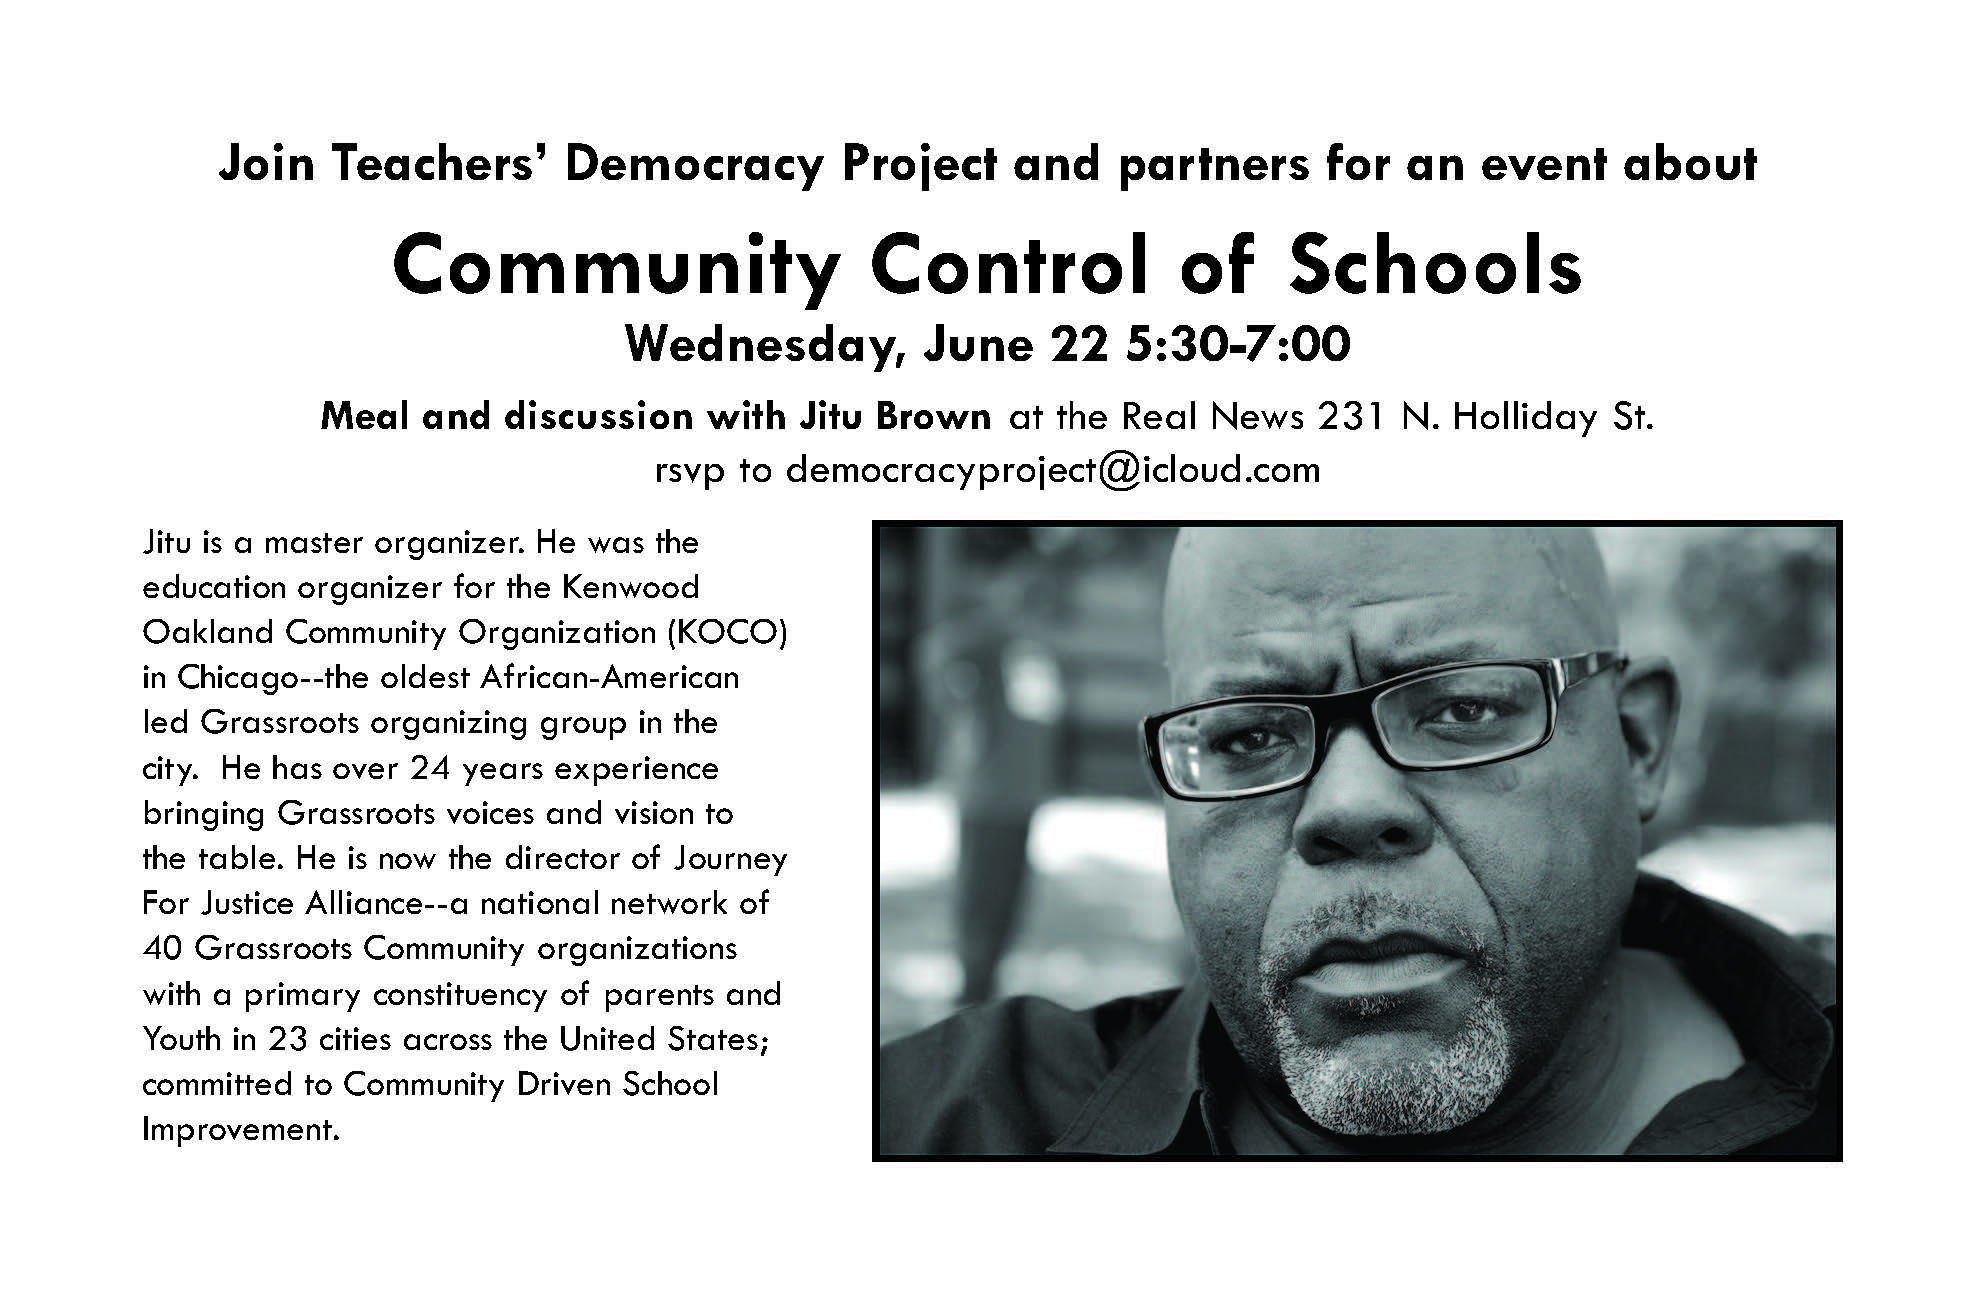 Join the Teachers' Democracy Project and partners for a discussion with Jitu Brown about a model for running a school called Community Control of Schools. The idea focuses on what would schools look like if they were run by the community?       Dinner will be provided. Child care will be provided upon request. RSVP at    https://www.eventbrite.com/e/discussion-of-community-control-of-schools-with-jitu-brown-tickets-25996592508